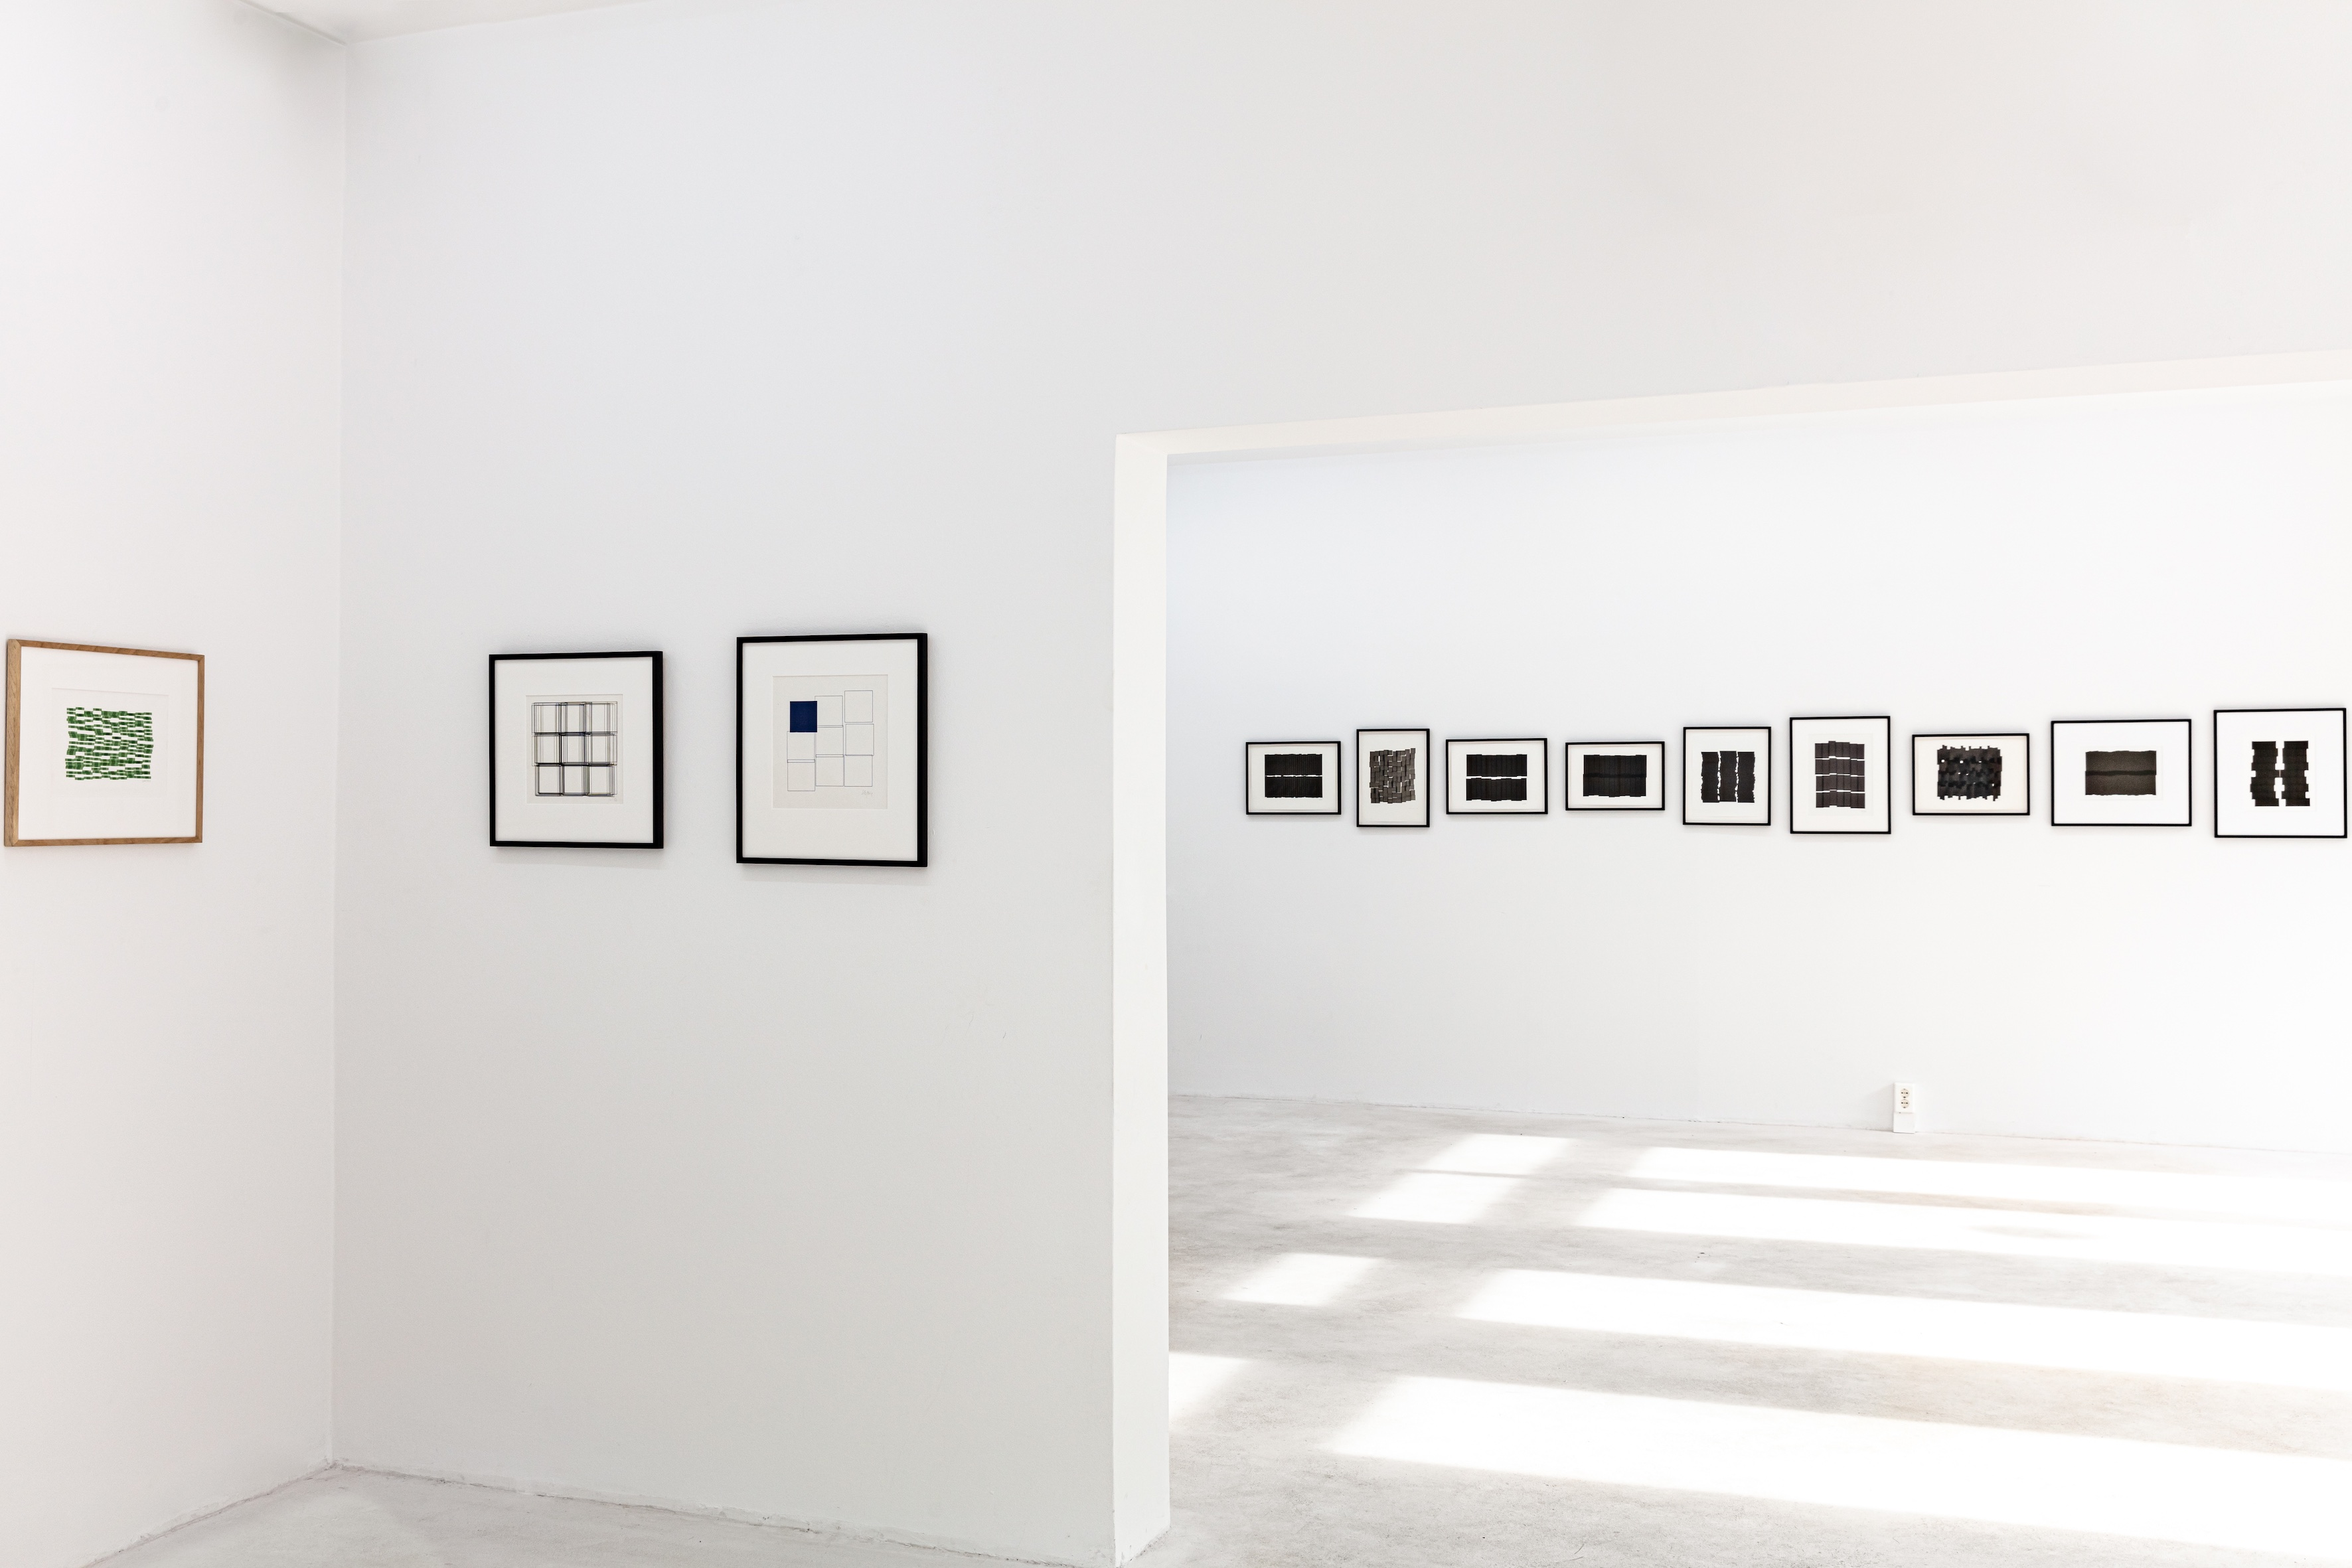 Vera Molnar, The 1980s, Exhibition view